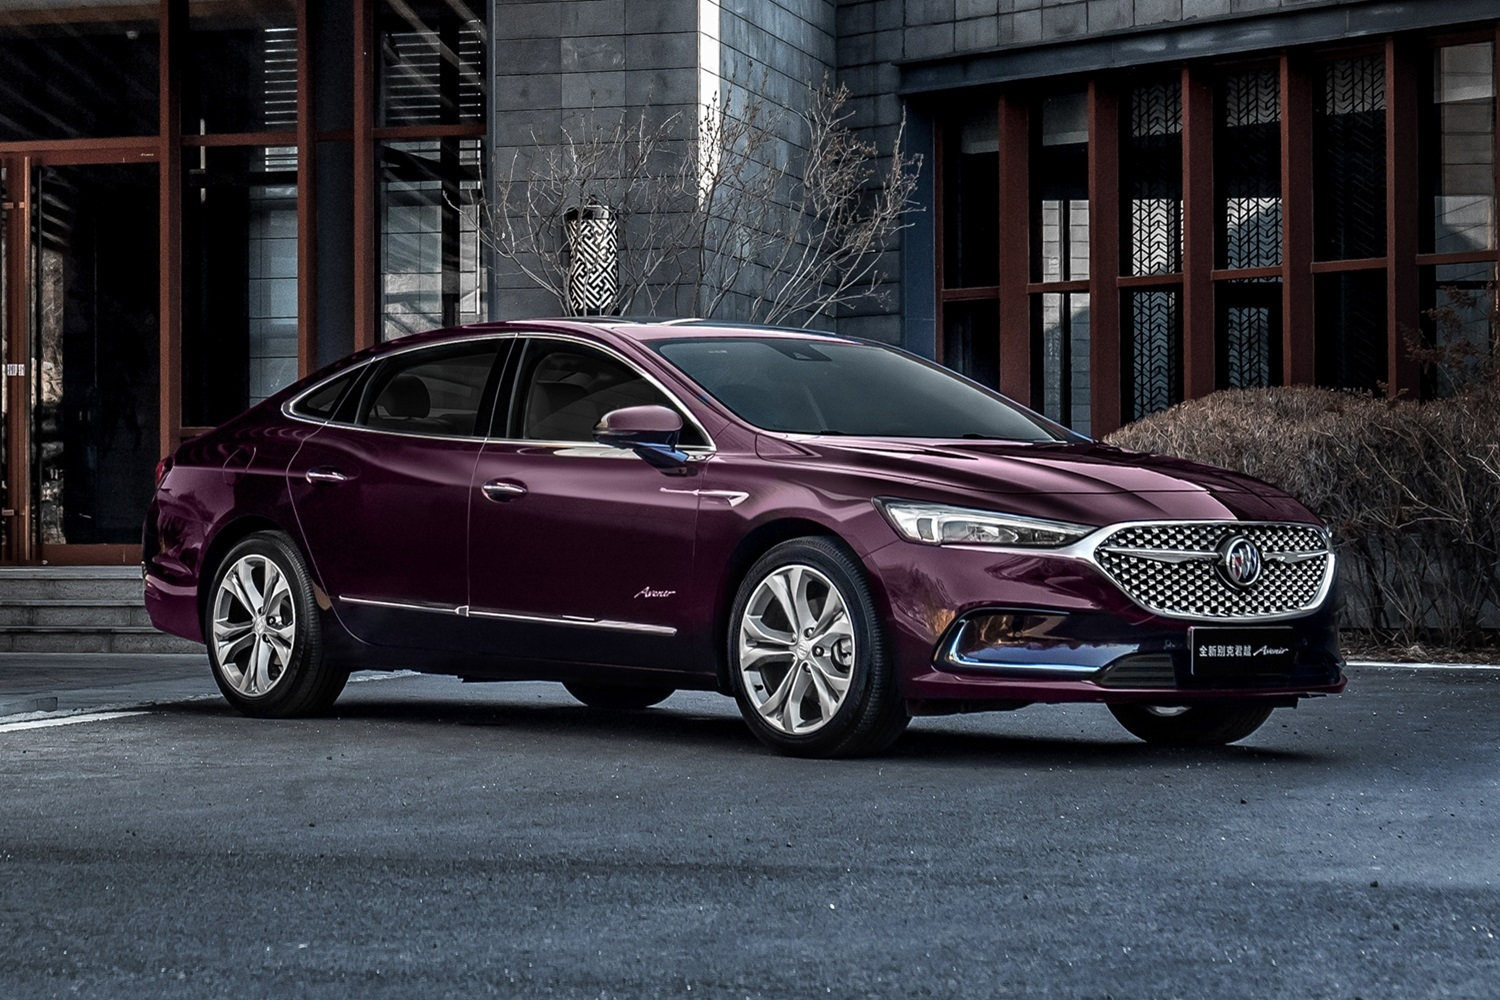 2021 Buick Lacrosse Gets More Refined Than Ever | Gm Authority 2022 Buick Lacrosse Pictures, Trims, Used